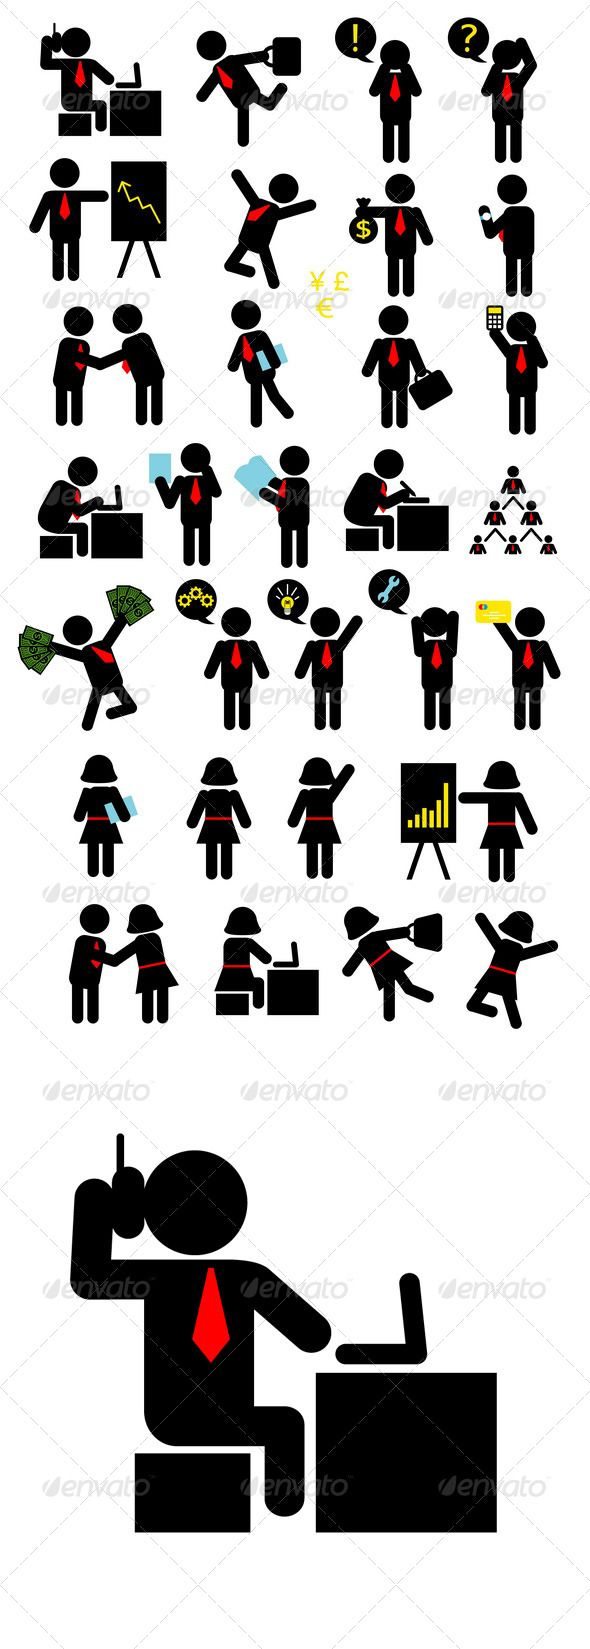 Business Pictogram Icons Vector program, Pictogram and